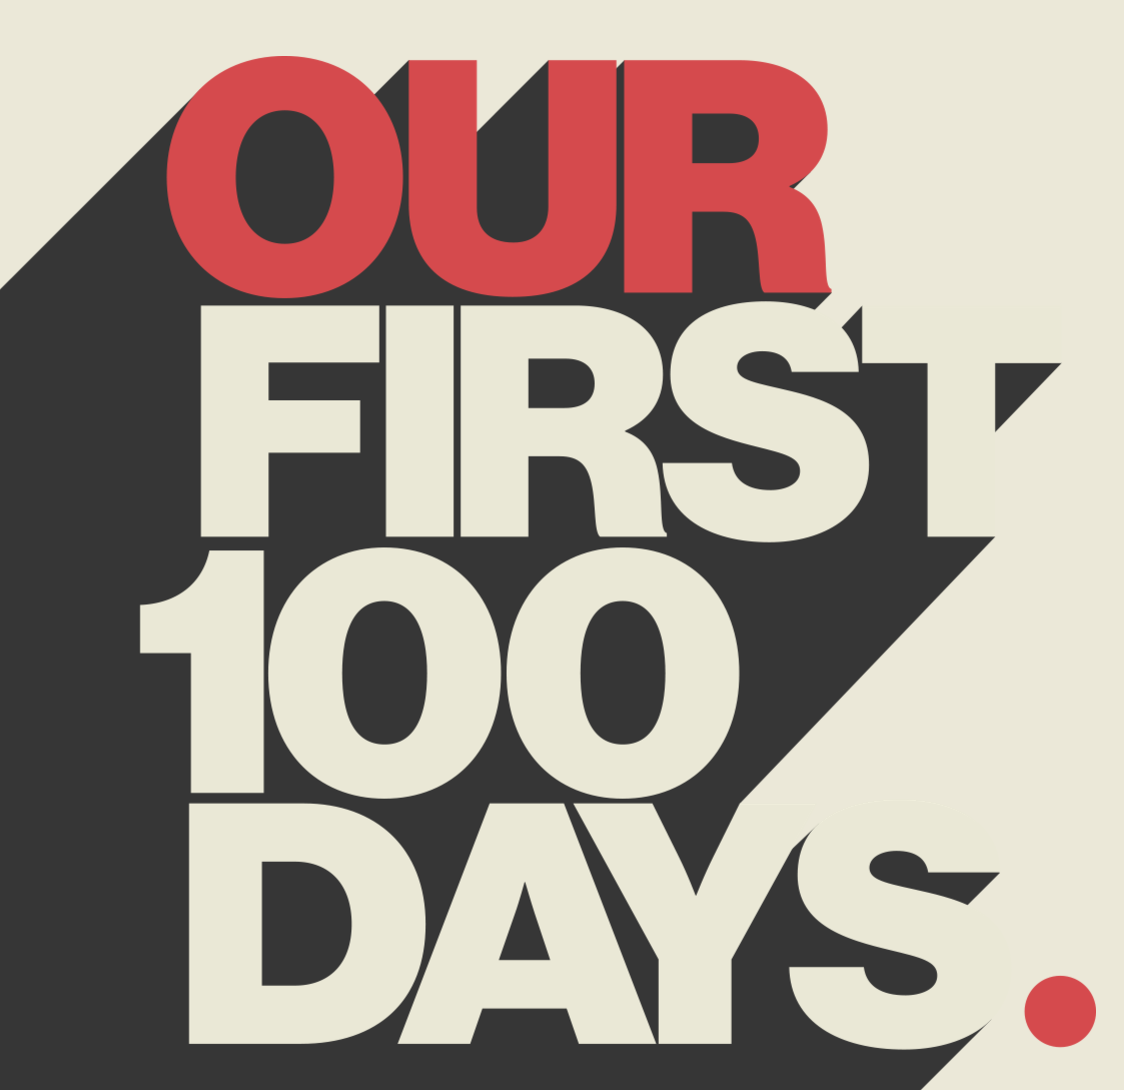 Musicians Unite To Offer 100 Days Of Tunes